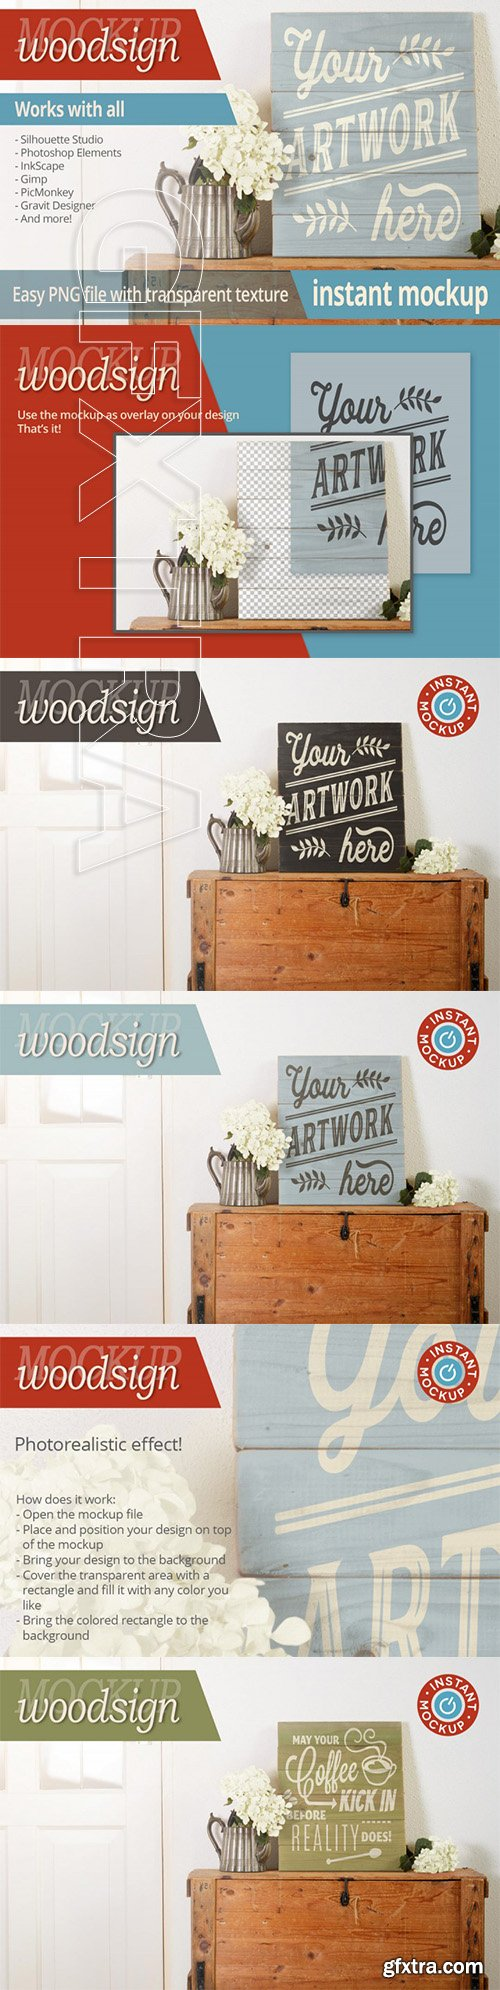 Instant png photorealistic woodsign mockup